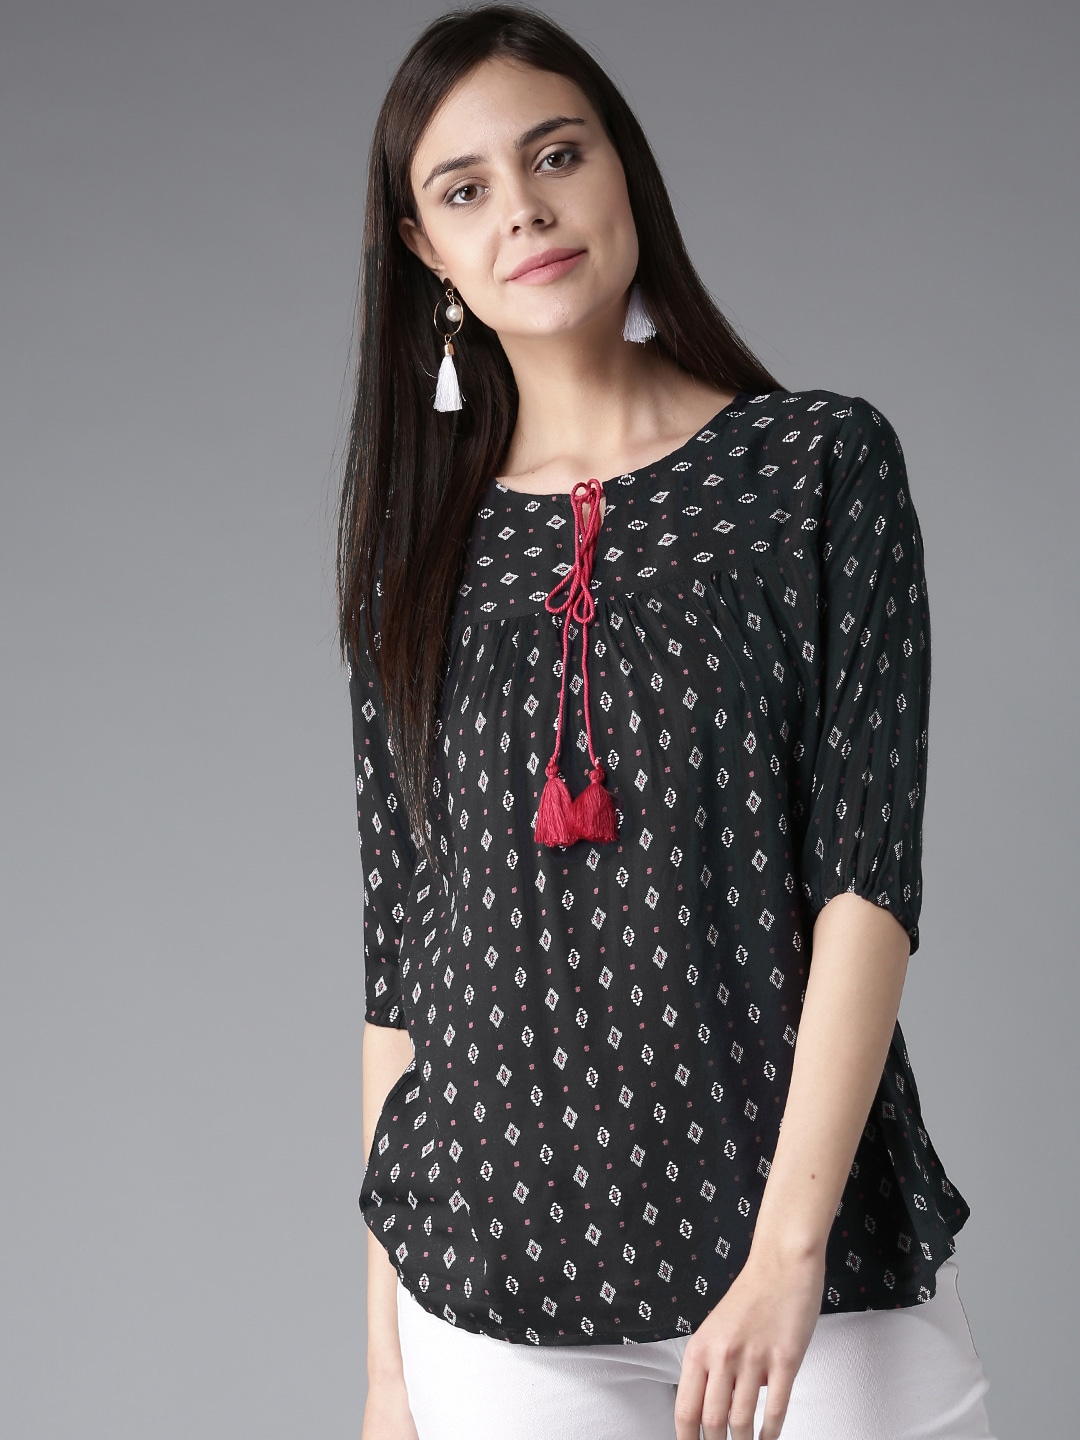 Rayon Tops - Buy Rayon Tops for Women   Girls Online   Myntra 78c3bbc49c